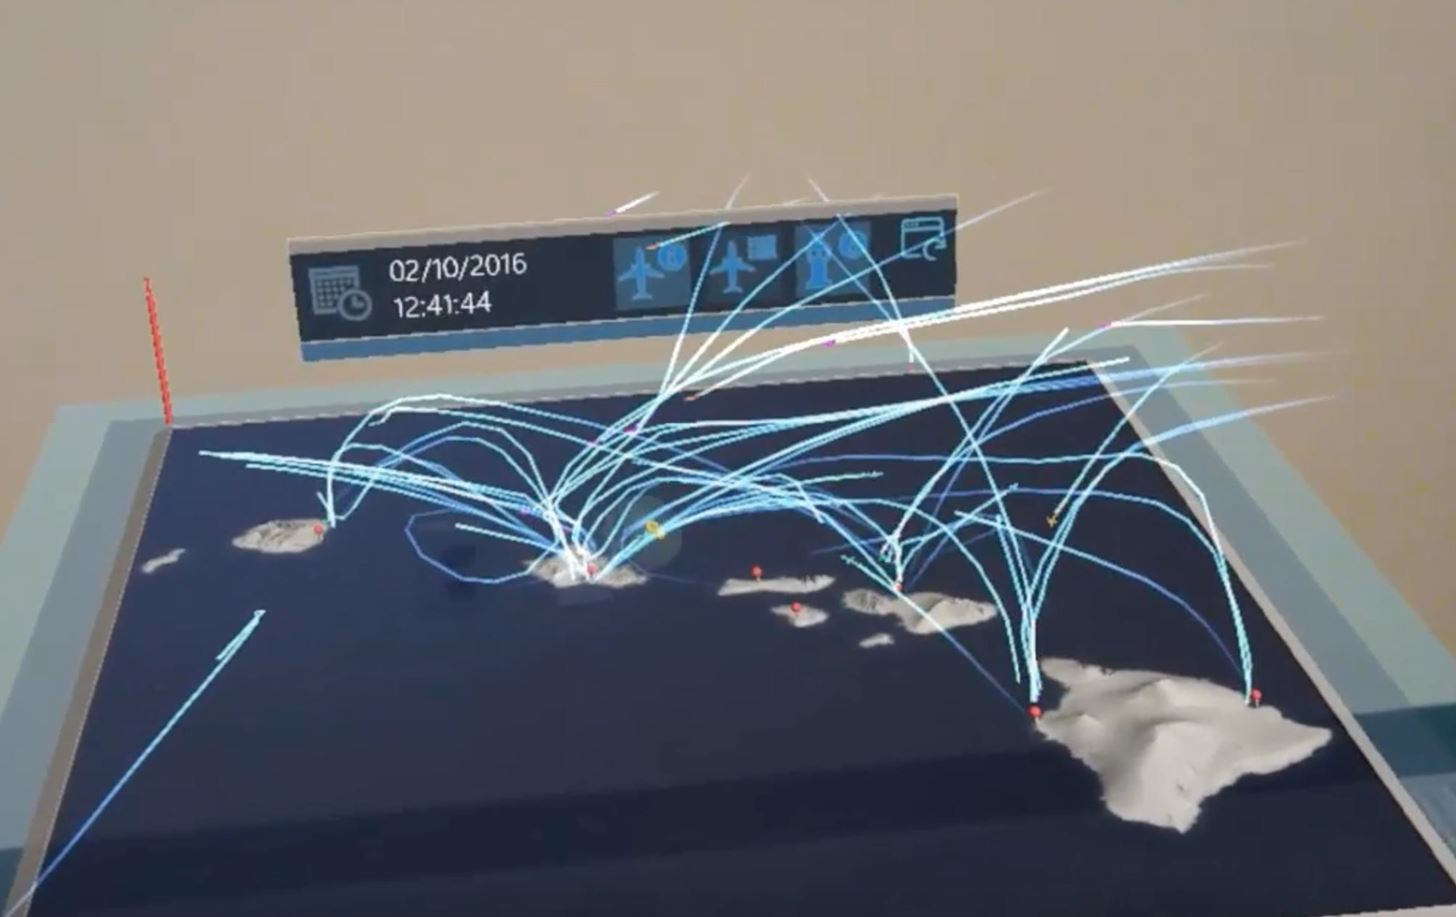 HoloFlight Turns Flight Data into Cool Mixed Reality Visualizations